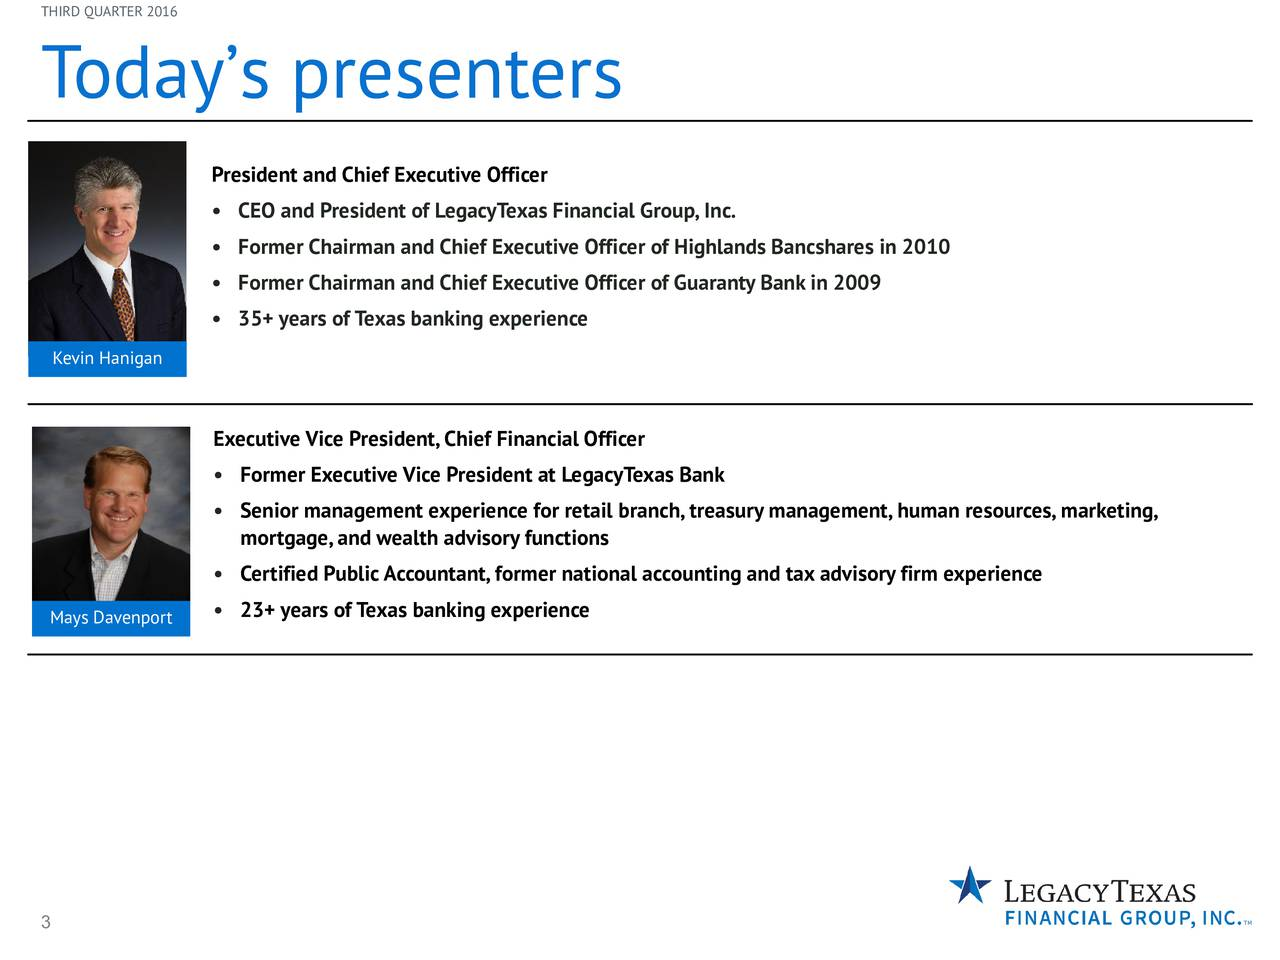 T odays presenters President and Chief Executive Officer CEO and President of LegacyTexas Financial Group,Inc. Former Chairman and Chief Executive Officer of Highlands Bancshares in 2010 Former Chairman and Chief Executive Officer of Guaranty Bank in 2009 35+ years of Texas banking experience Kevin Hanigan Executive Vice President,Chief Financial Officer Former Executive Vice President at LegacyTexas Bank Senior management experience for retail branch, treasury management, human resources, marketing, mortgage,and wealth advisory functions Certified PublicAccountant,former national accounting and tax advisory firm experience Mays Davenport 23+ years of Texas banking experience 3